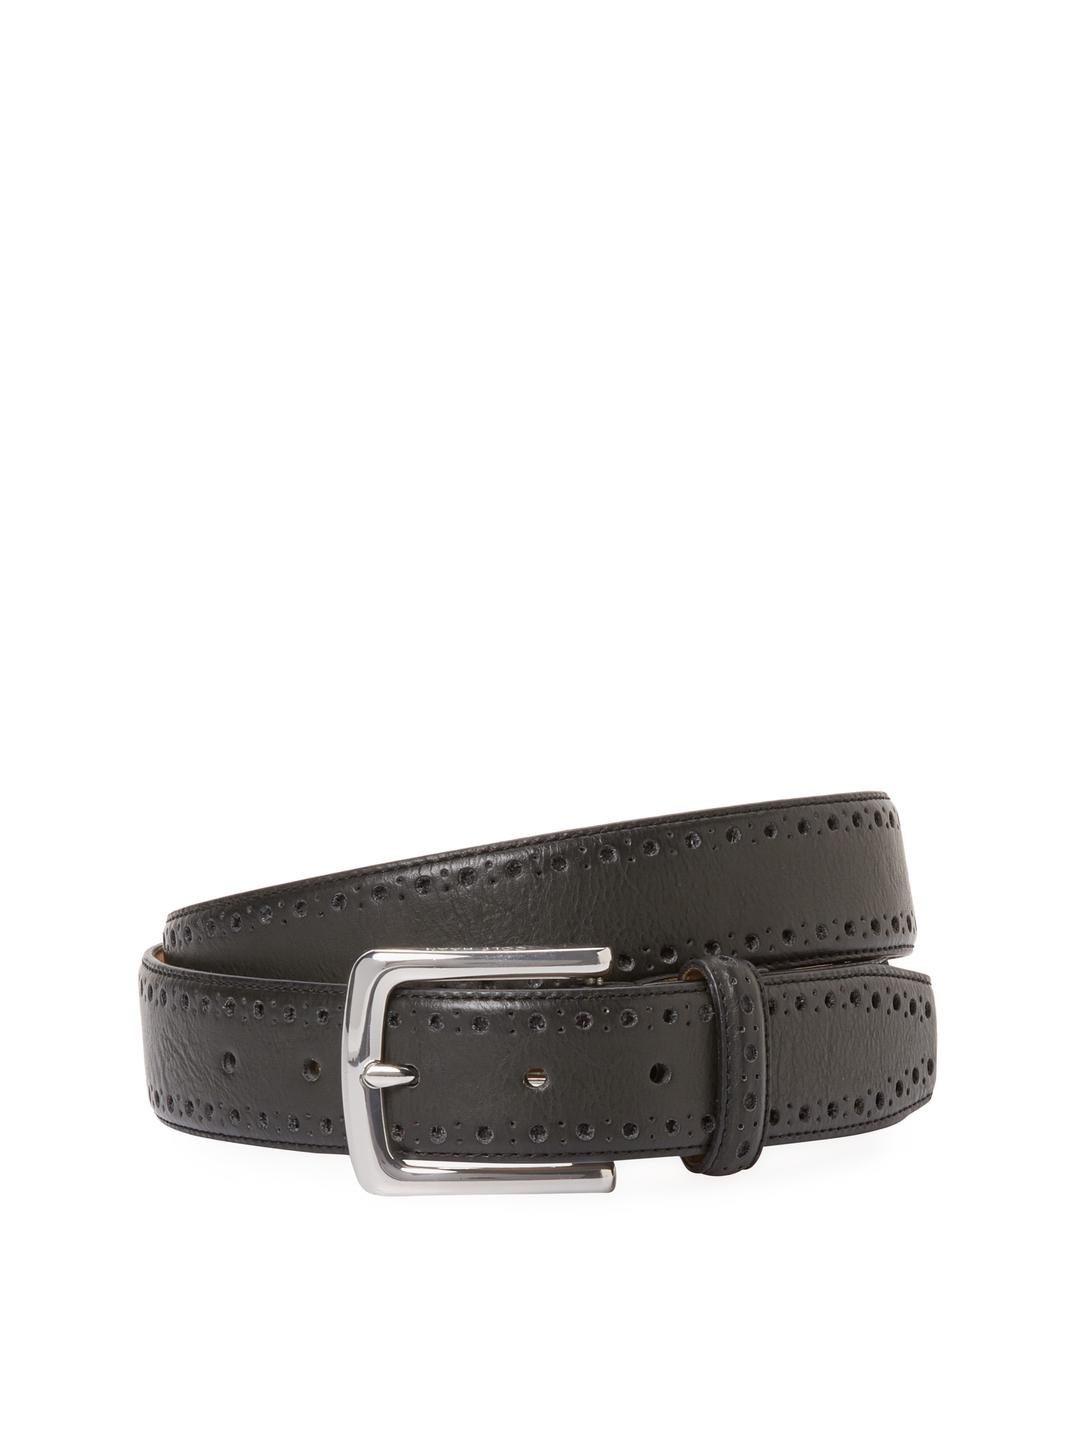 Small Leather Goods - Belts Osklen 3Vn7OXoL